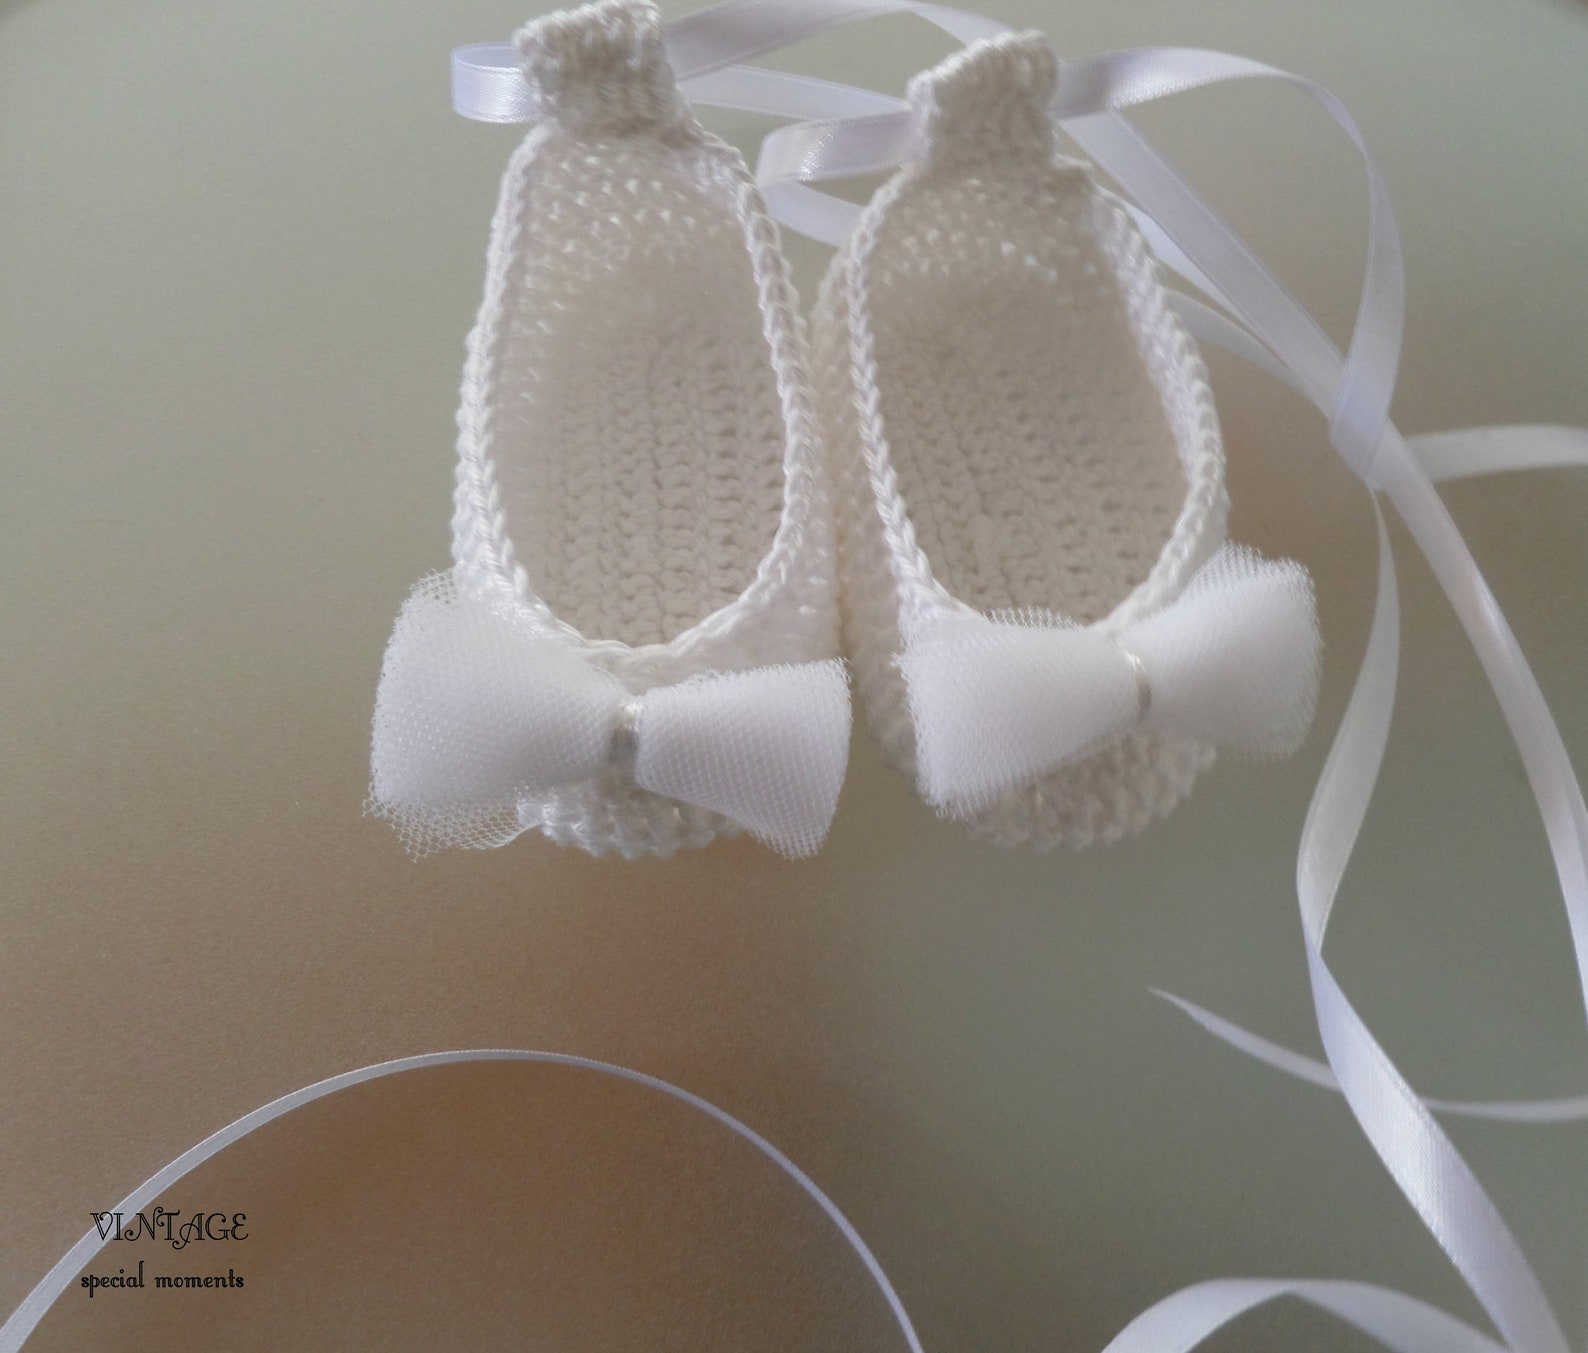 ballet booties for baby girl with tulle bow/handmade crochet baby fashion/new baby girl gift/beautiful crochet/ ready to ship